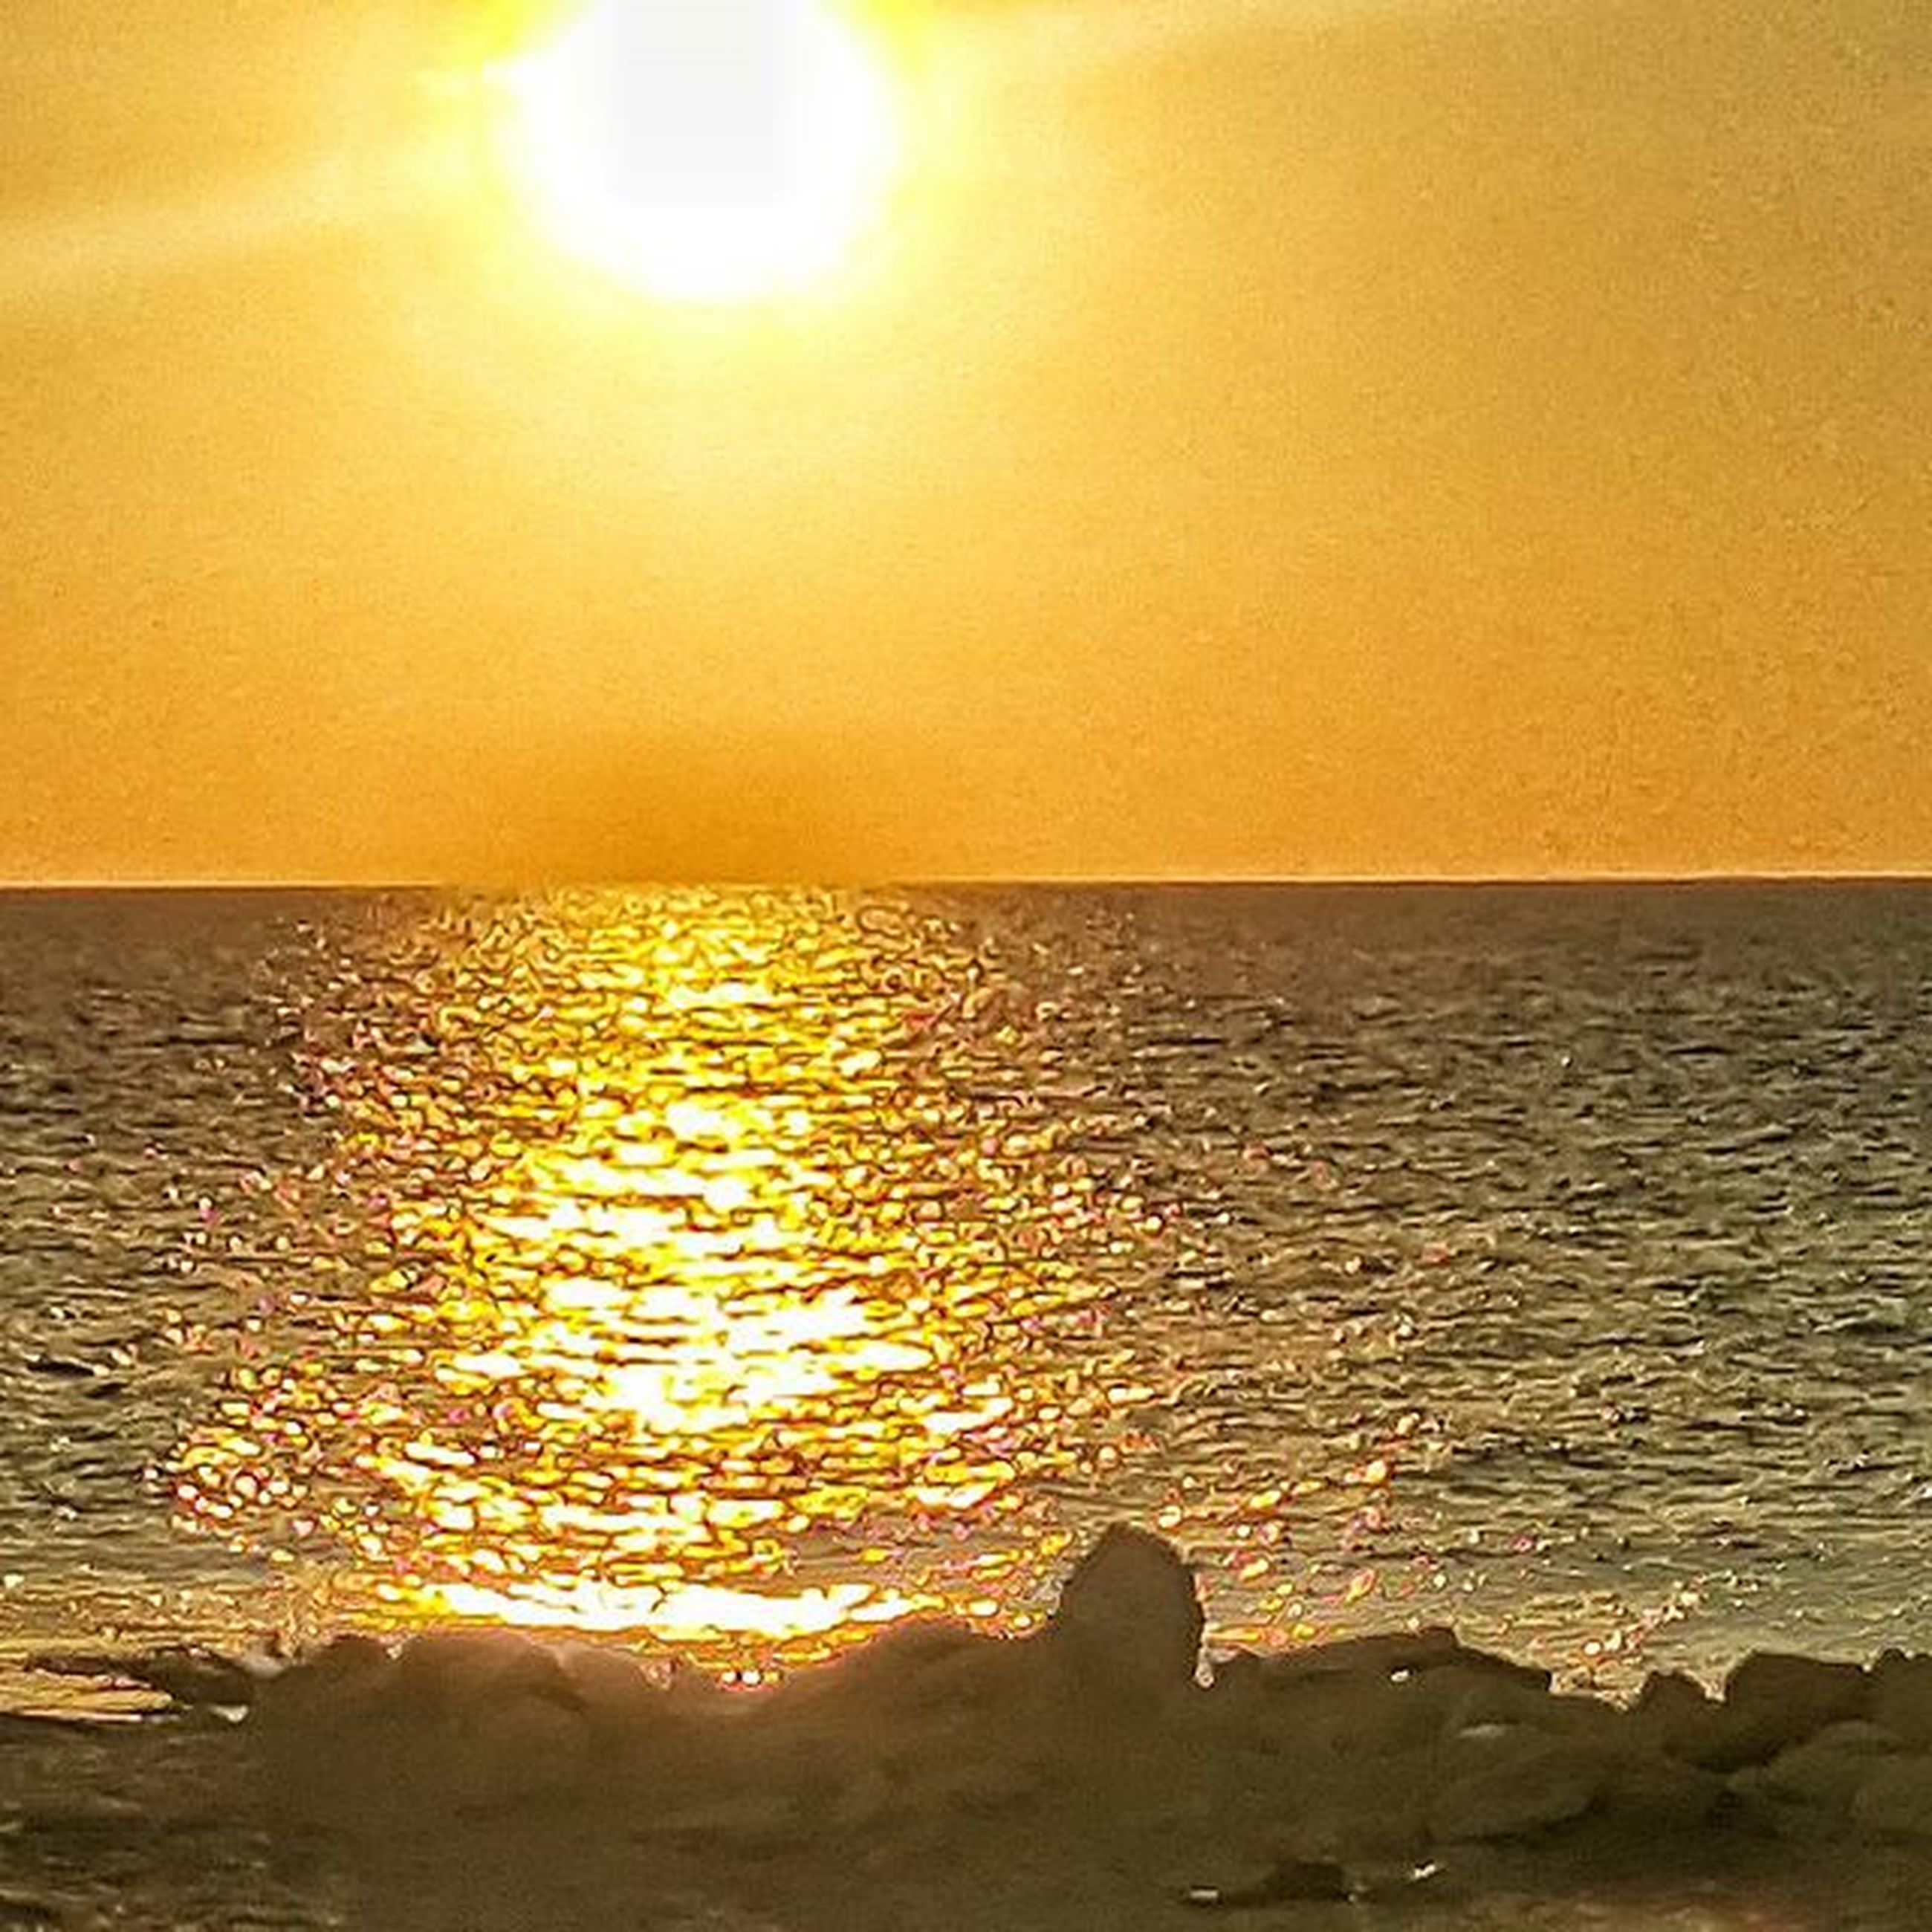 water, sunset, sea, sun, horizon over water, tranquil scene, scenics, tranquility, reflection, beauty in nature, rippled, orange color, nature, idyllic, sunlight, clear sky, sky, outdoors, silhouette, waterfront